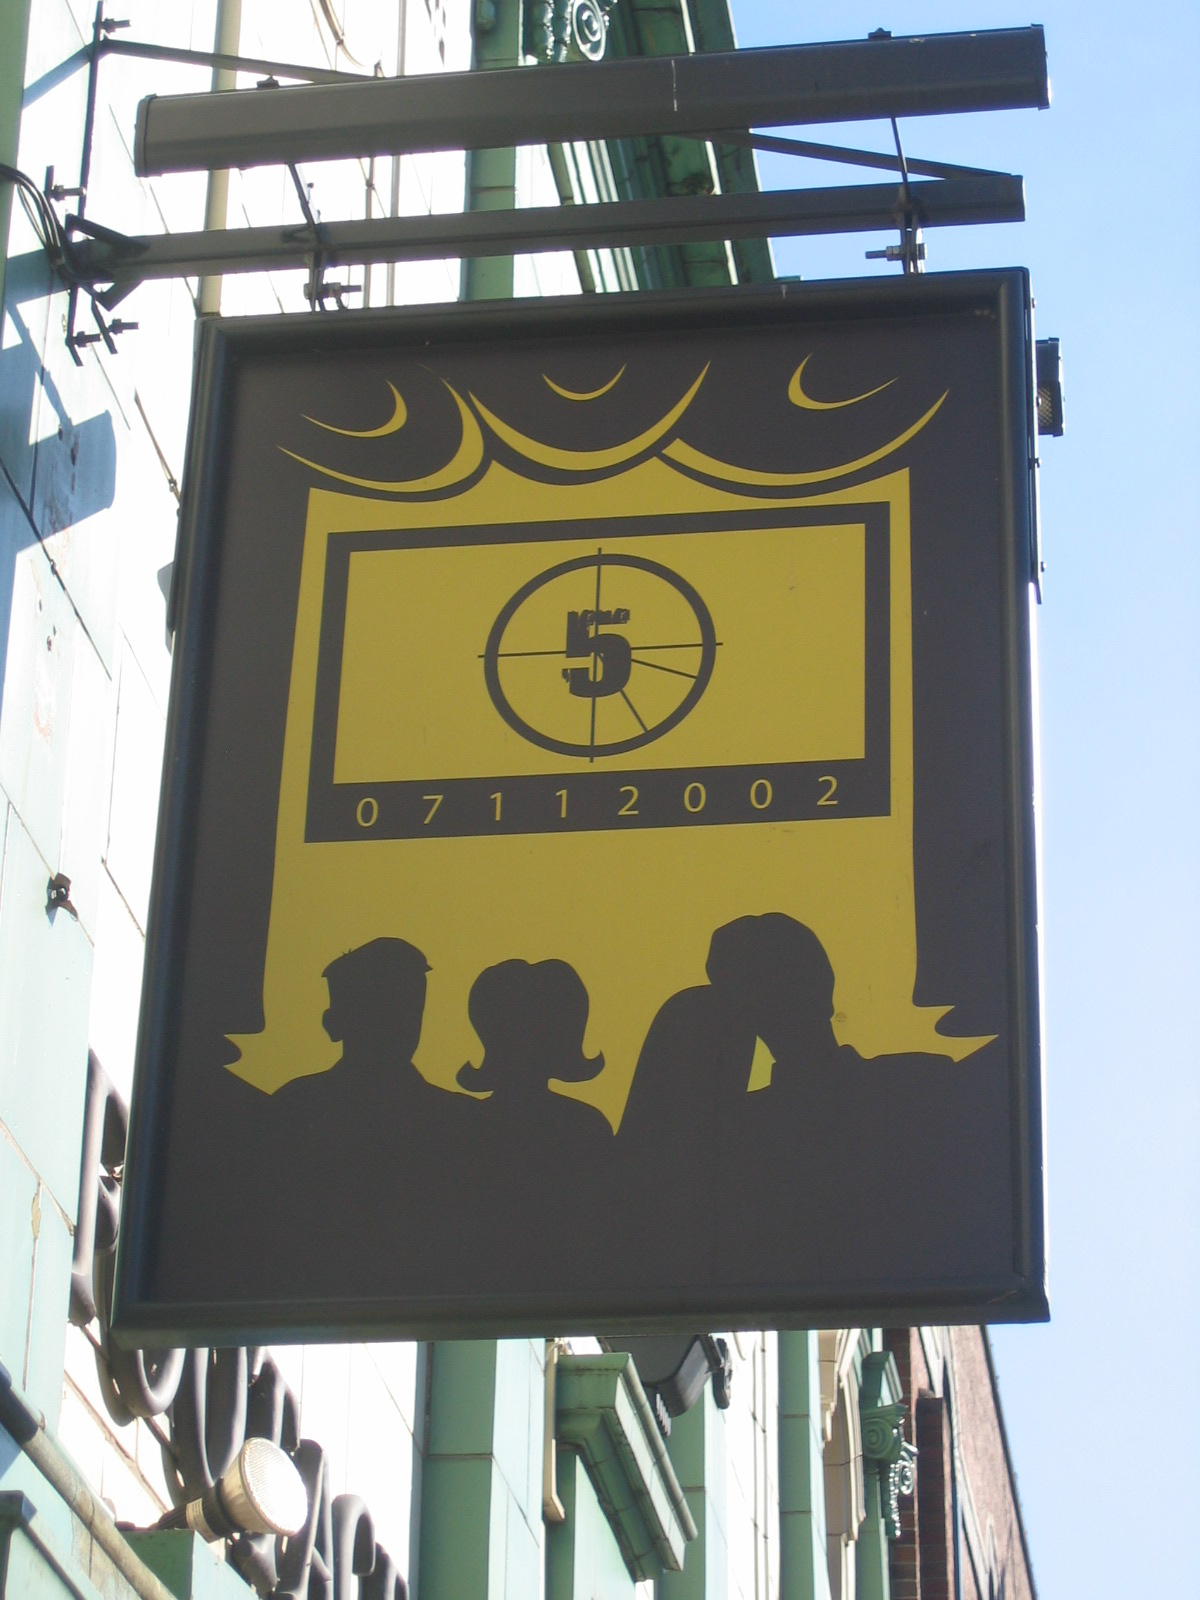 Photo taken by me – The Footage Pub sign, Manchester